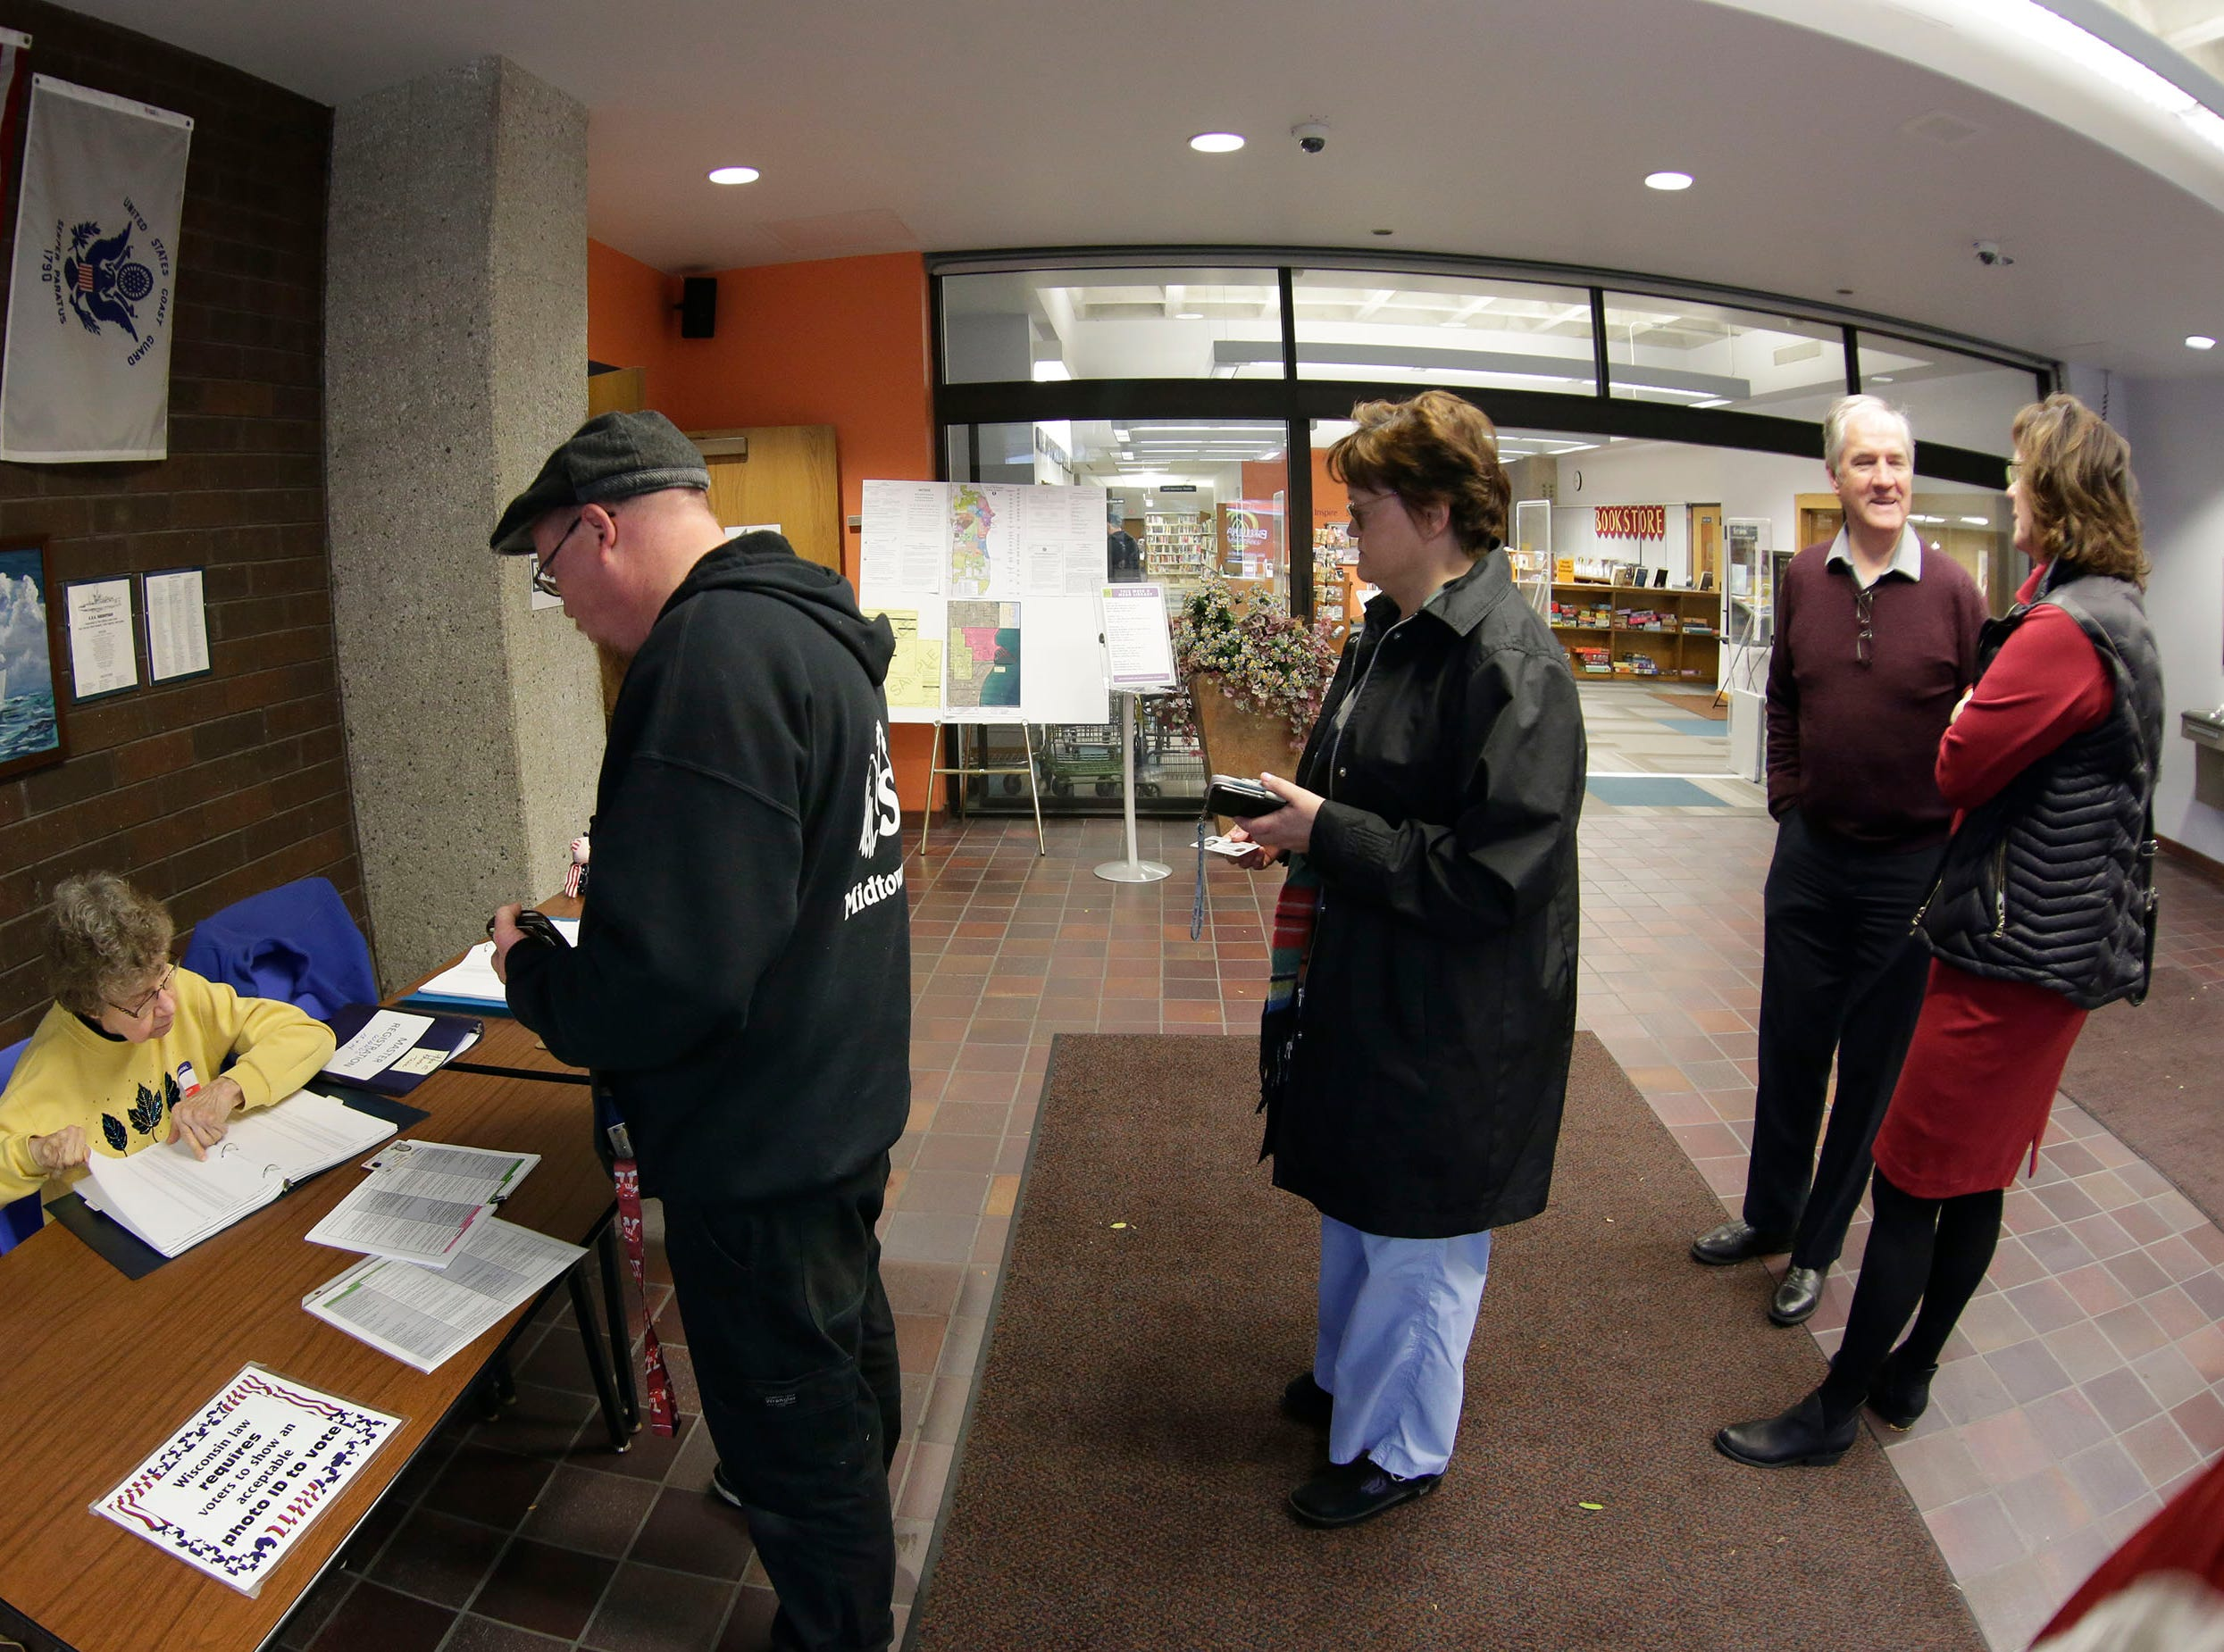 Poll worker Sue Wisse, checks over where a voter needs to vote at Mead Public Library polling place, Tuesday, November 6, 2018, in Sheboygan, Wis.